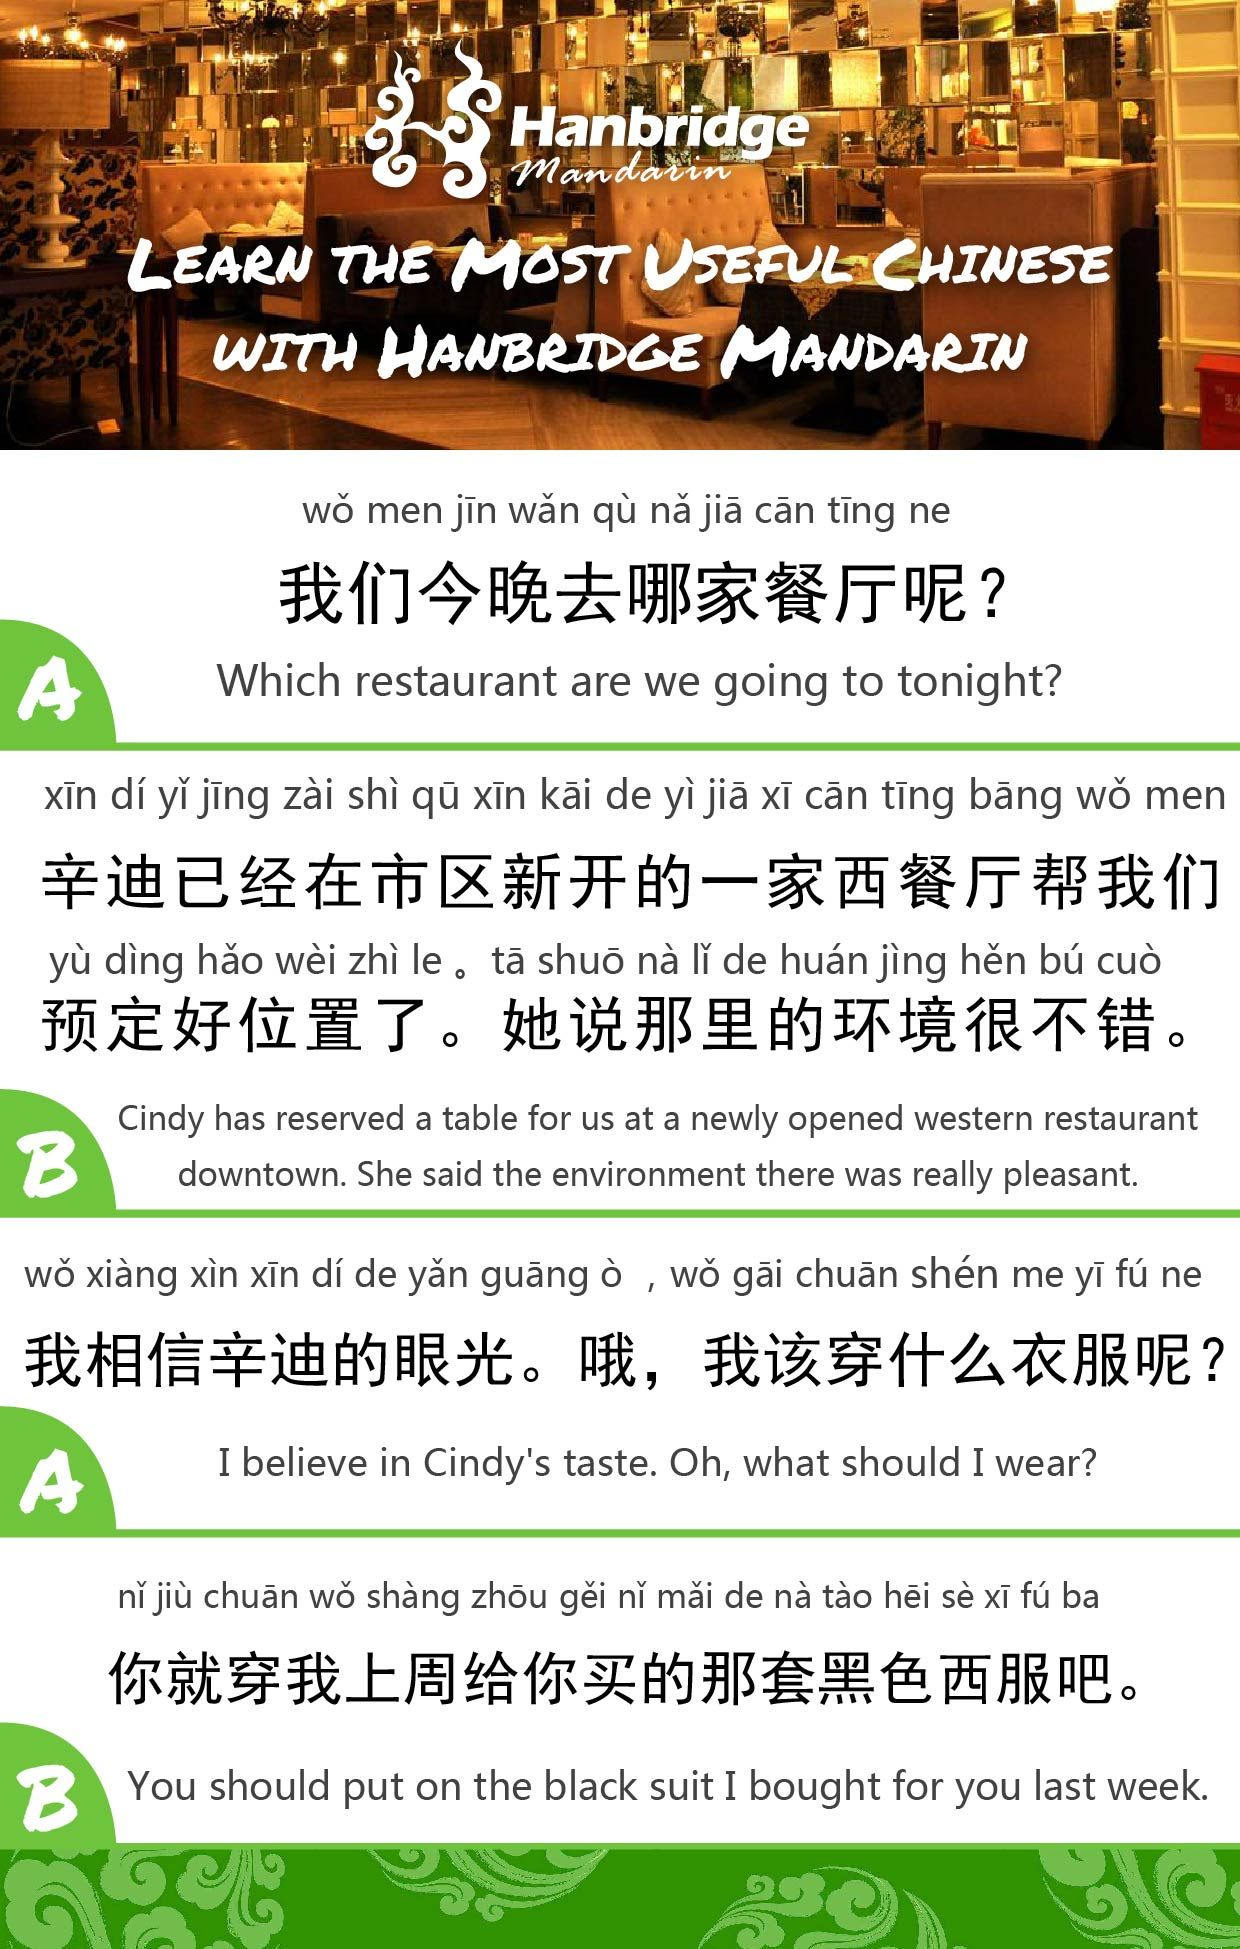 Do You Like Chinese Food How Do You Think Of The New Chinese Restaurant Let S Check The Dialog Chinese Language Words Learn Chinese Chinese Language Learning